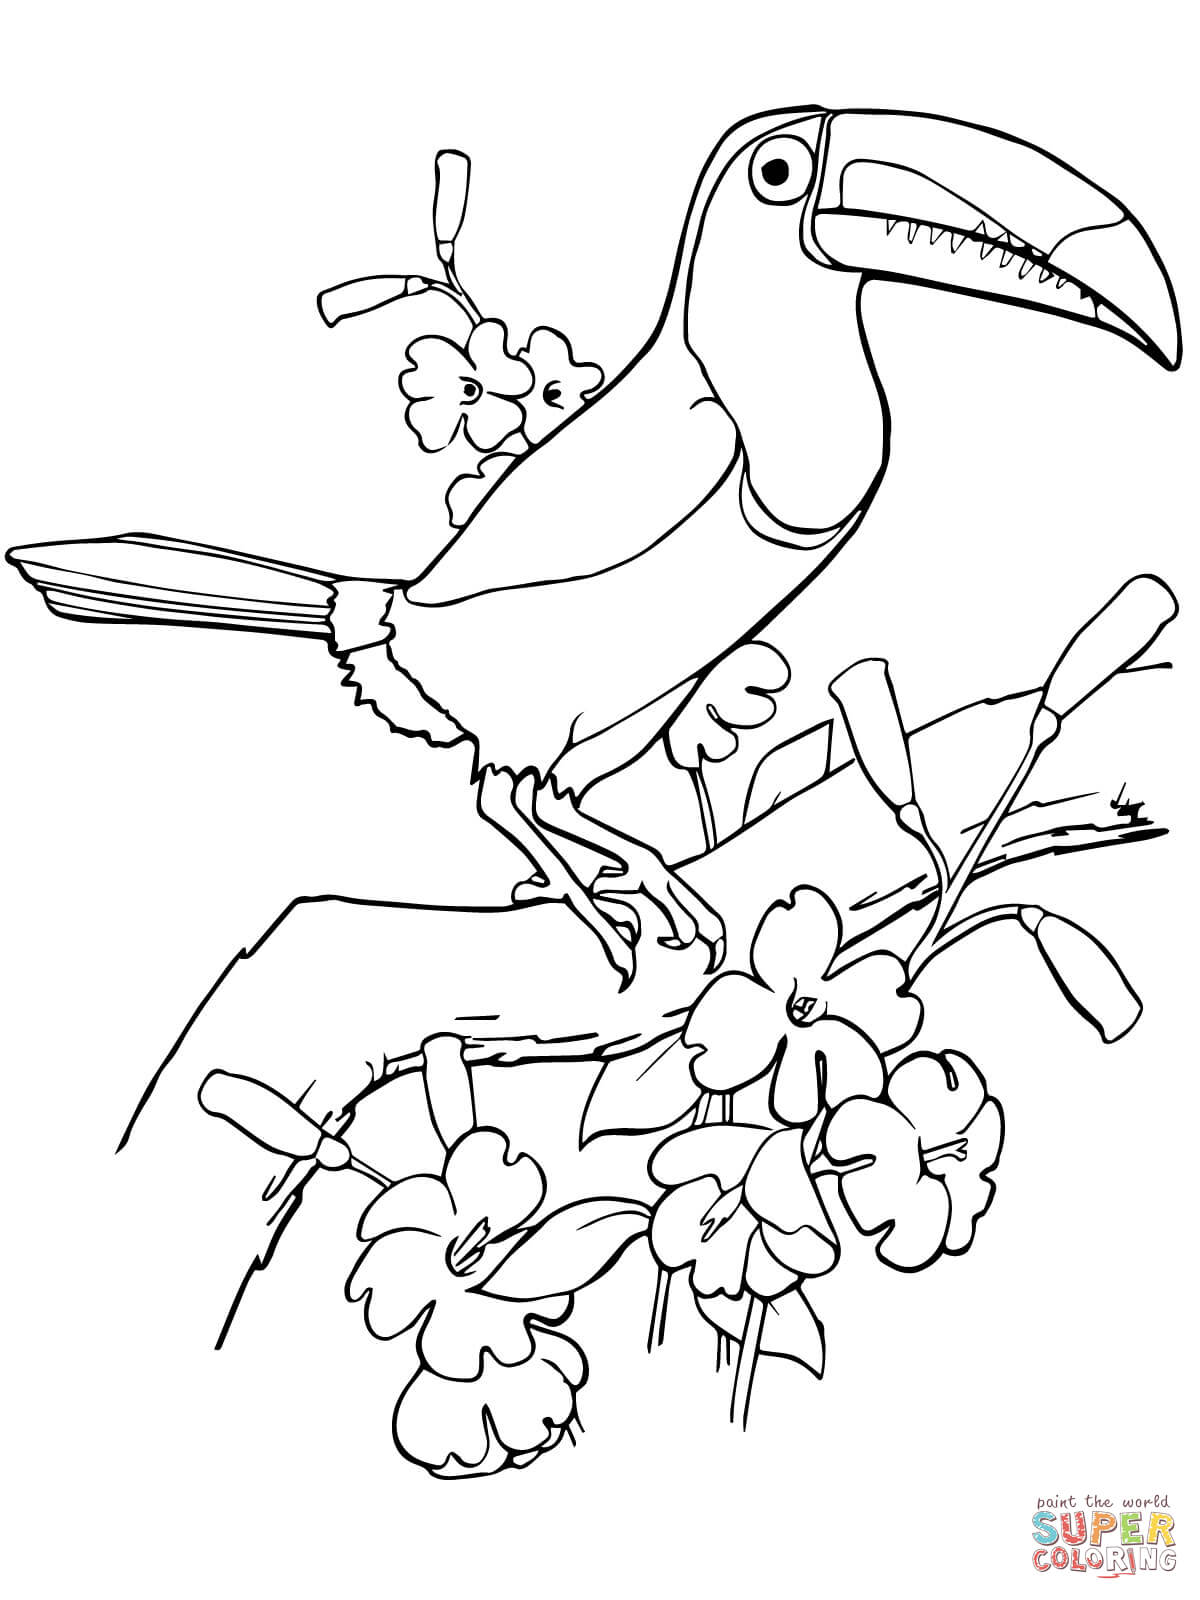 Keel Billed Toucan Coloring Page